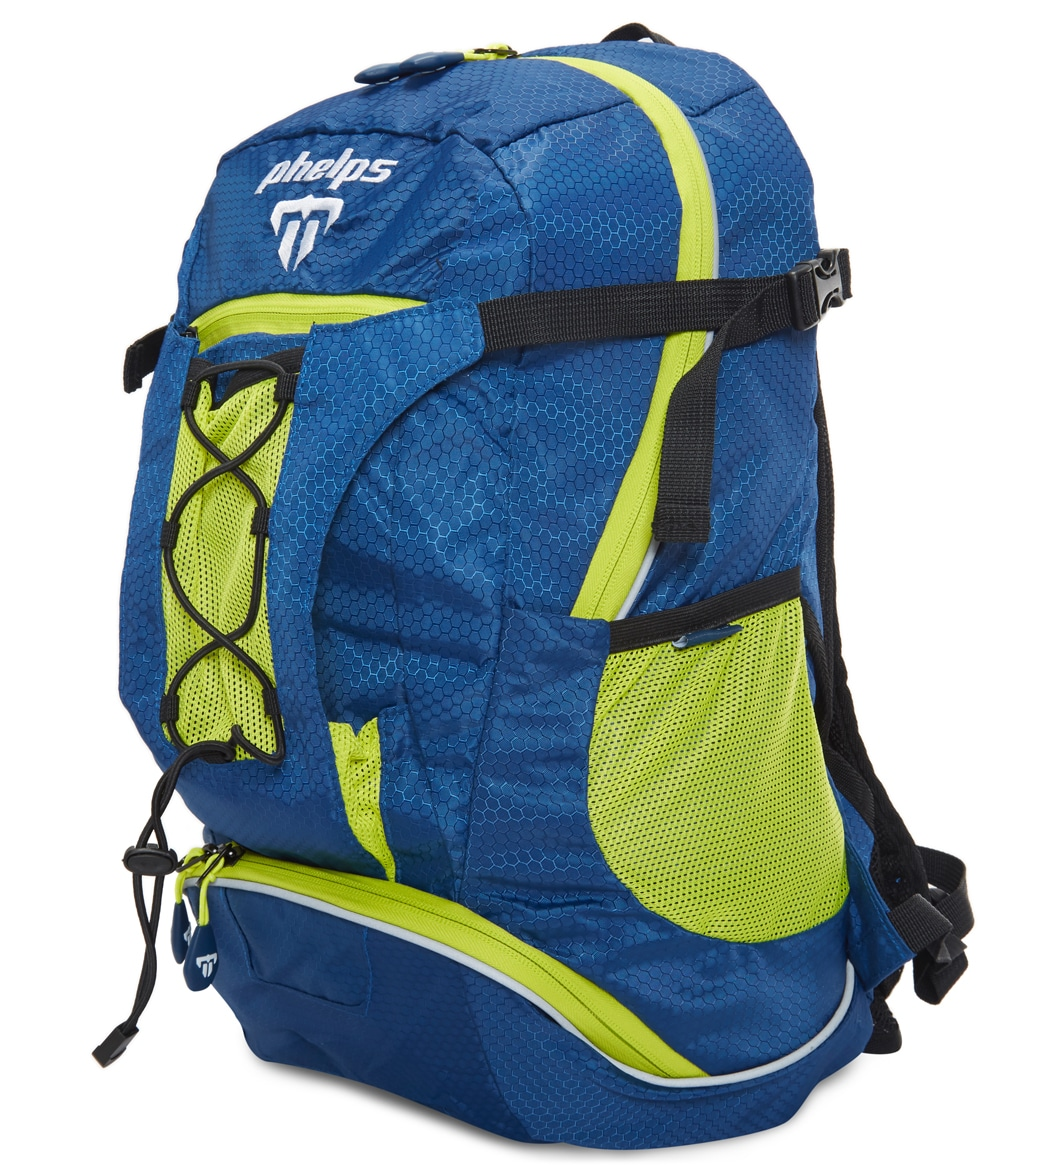 Phelps Team Swimming Bag Backpack